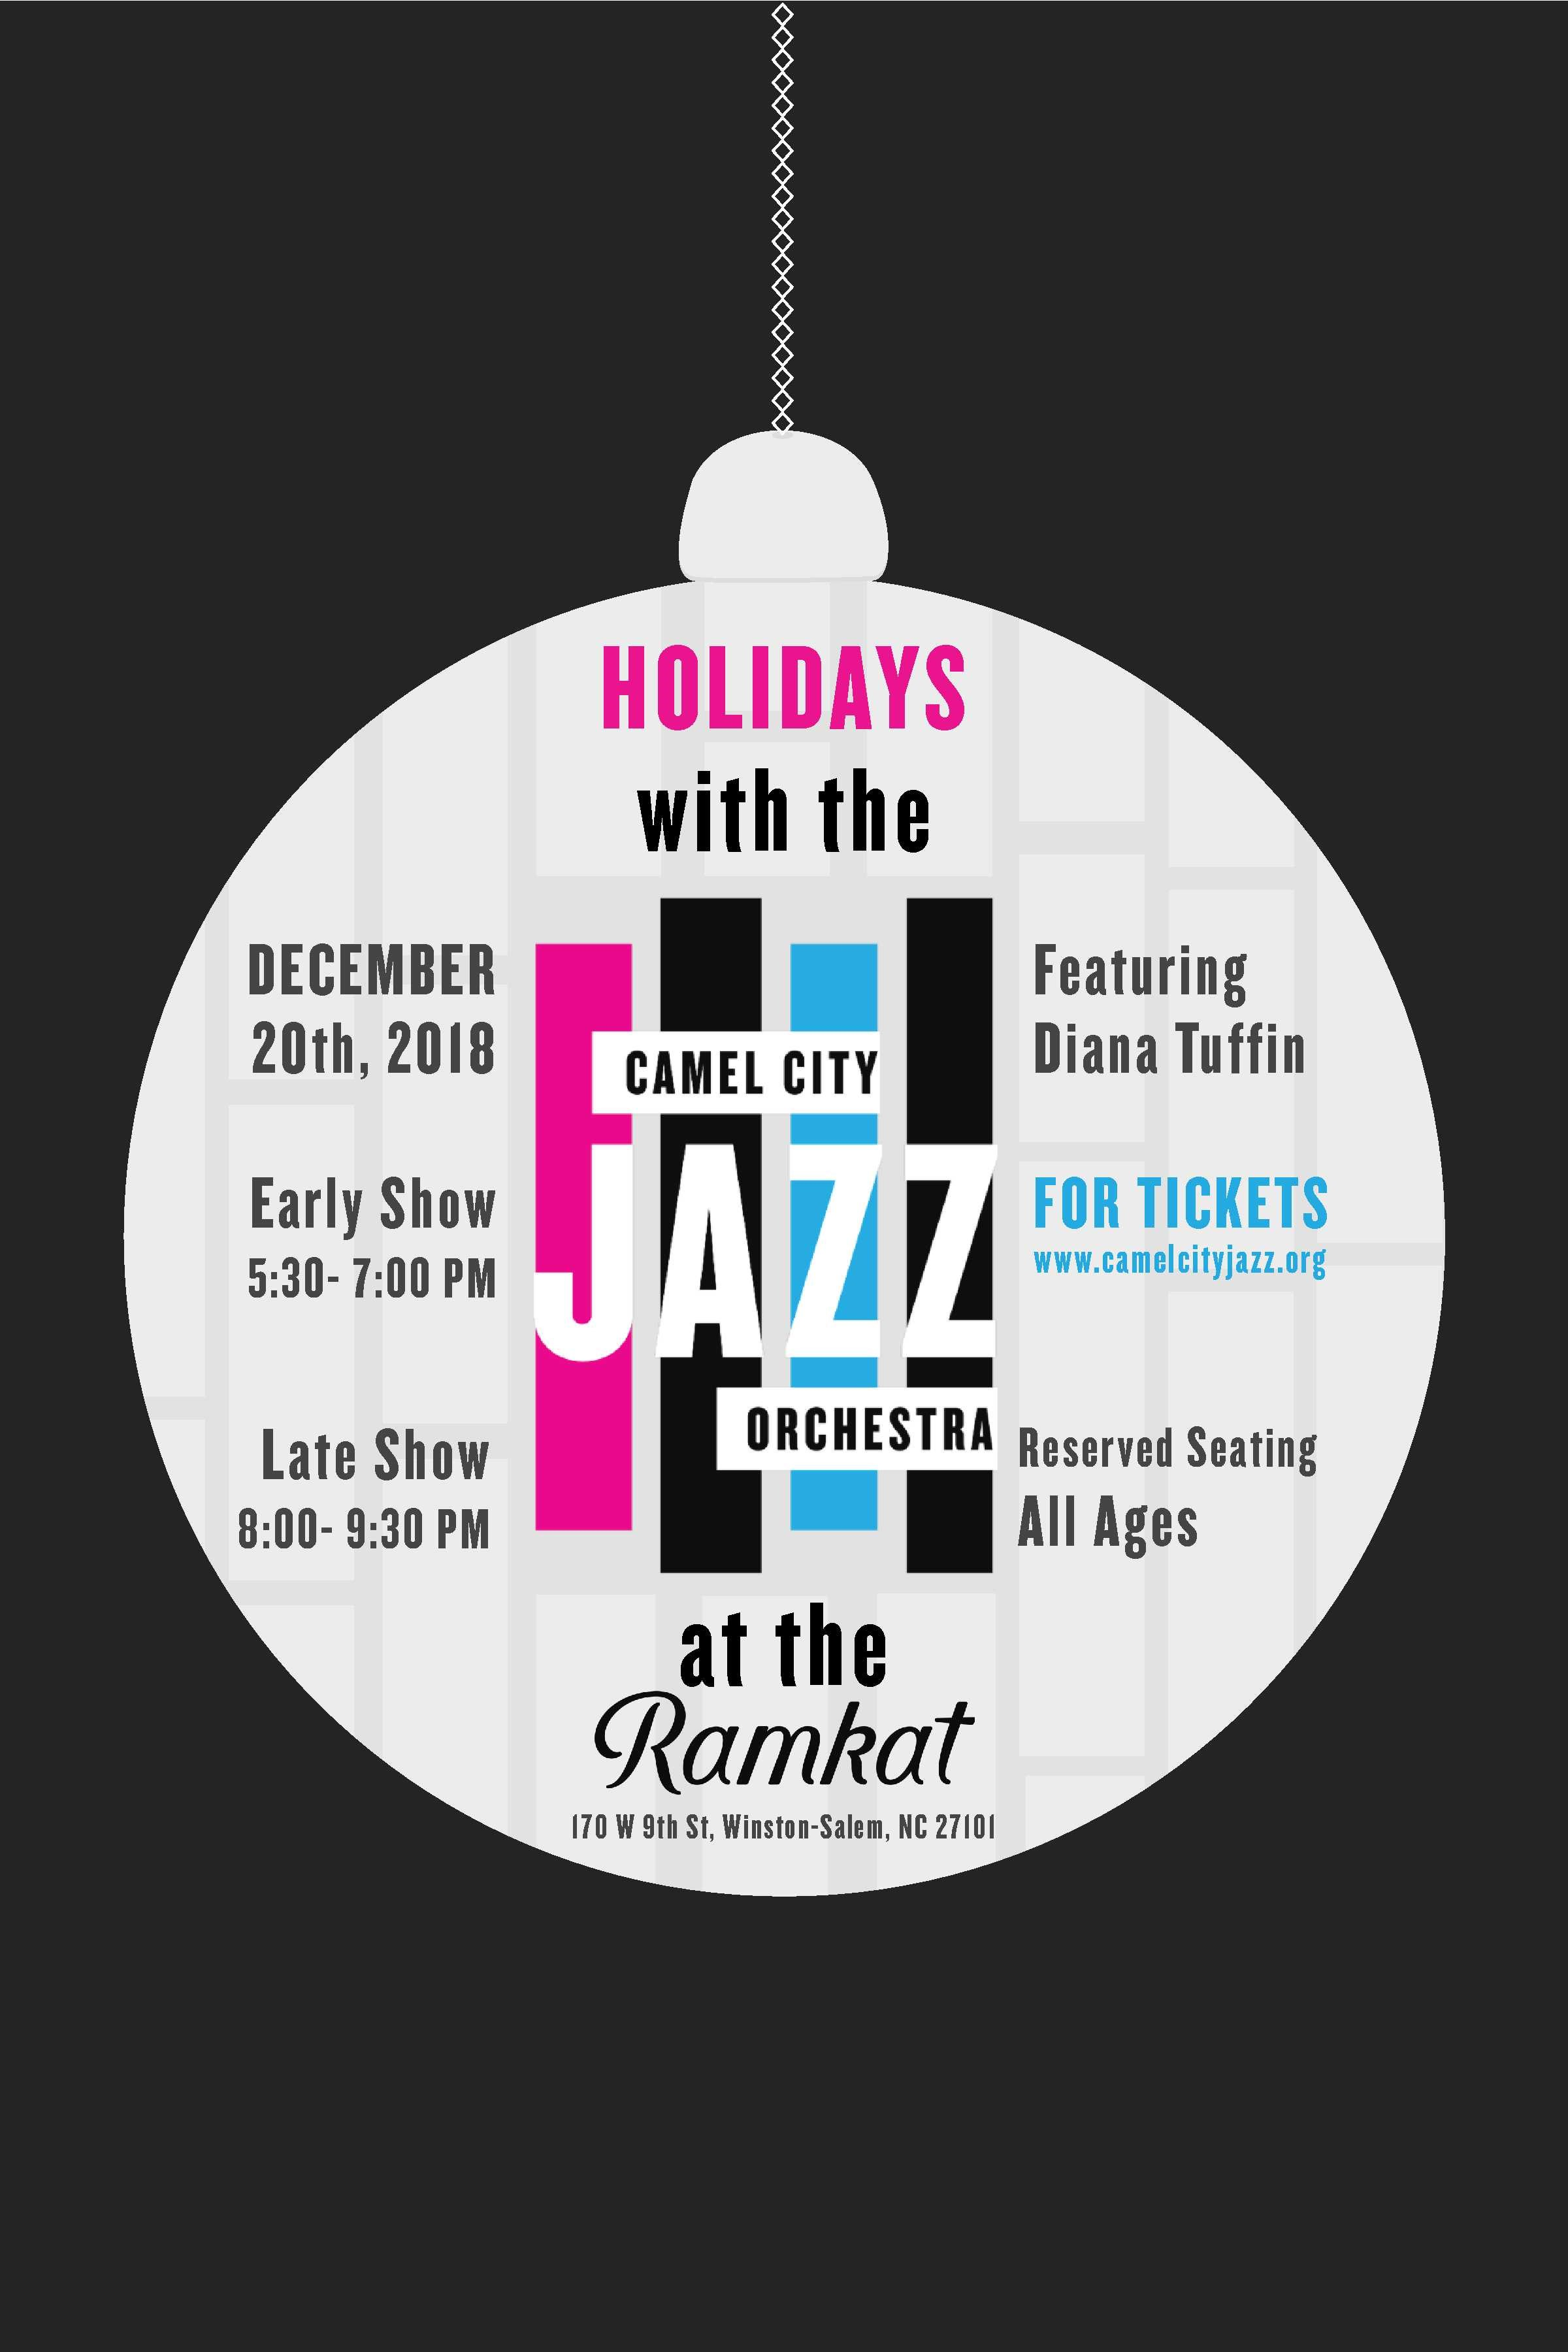 Holidays with Camel City Jazz Orchestra at The Ramkat